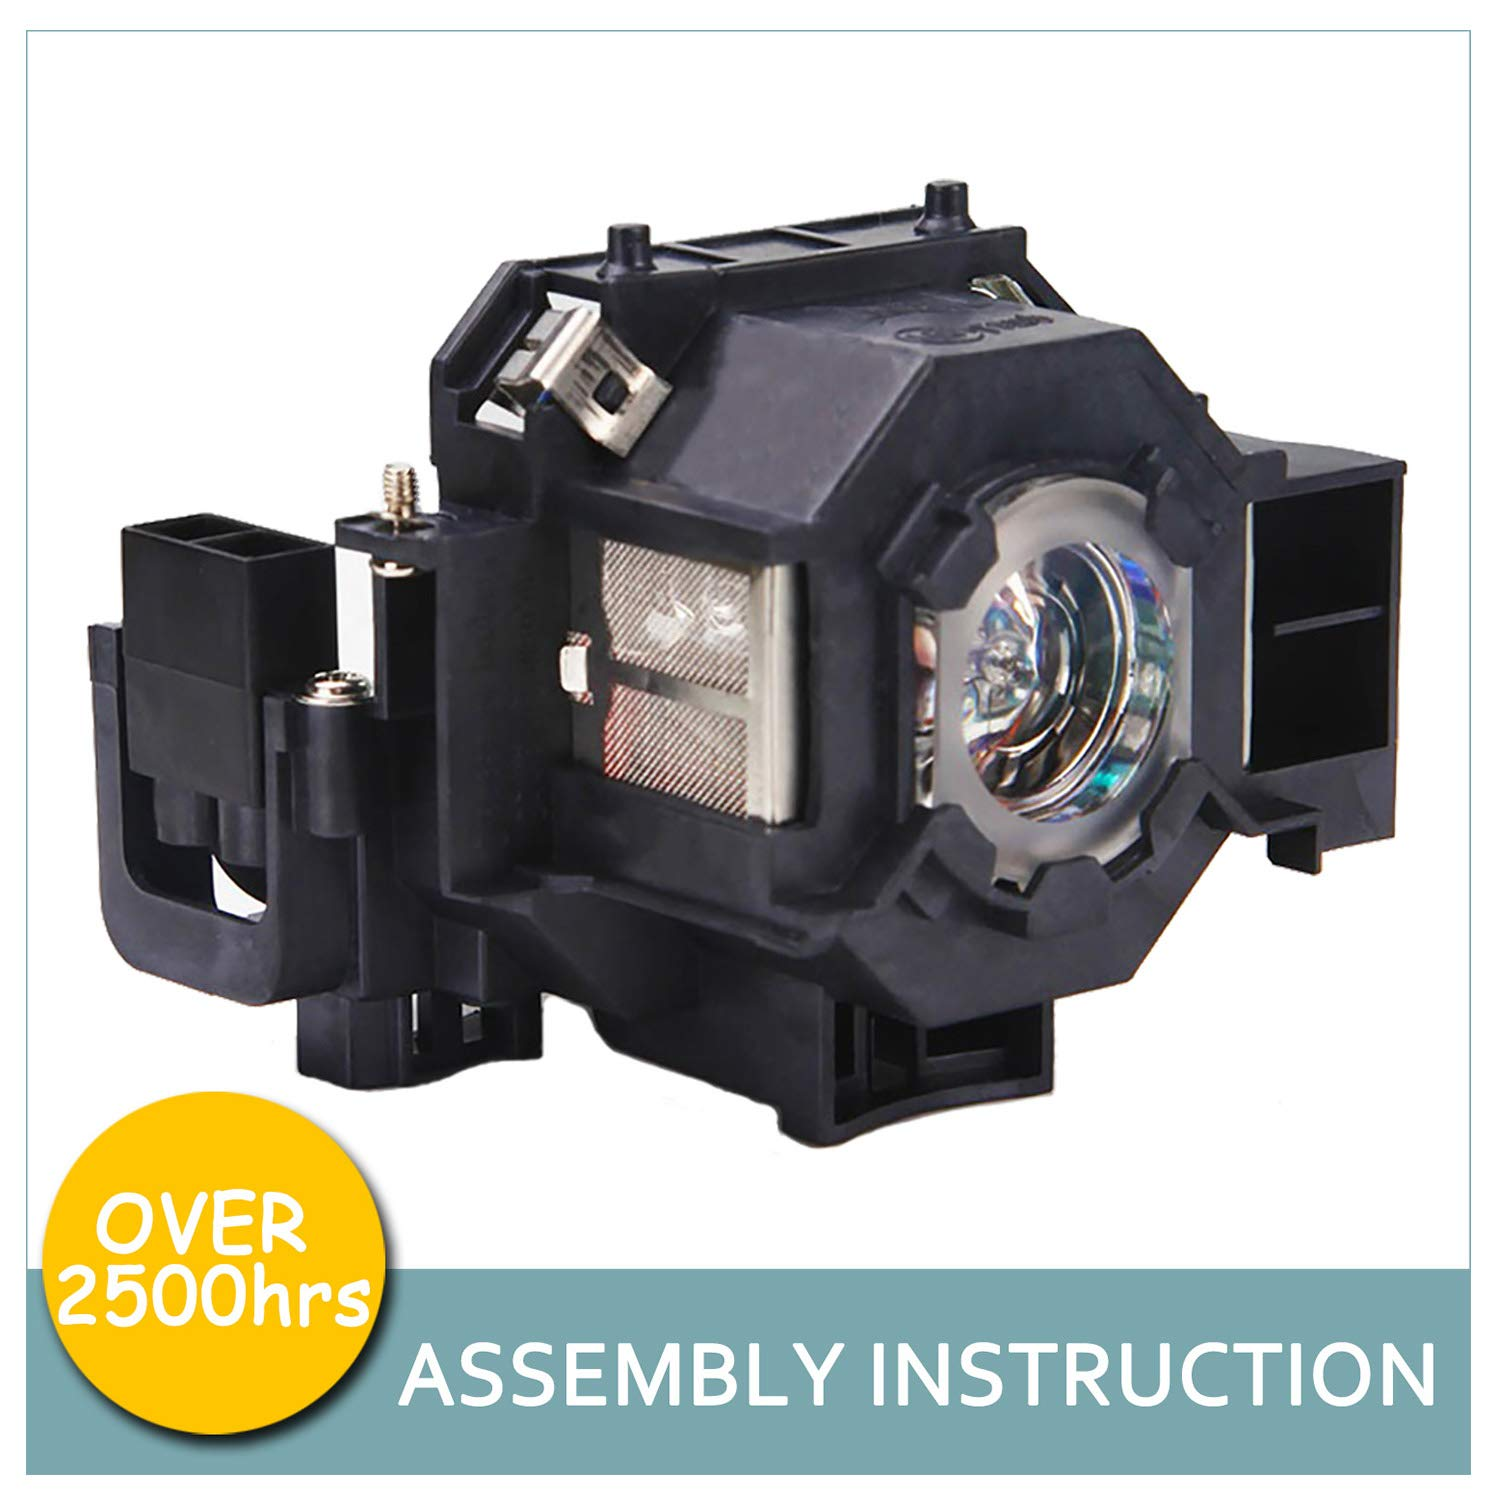 LOUTOC Projector Lamp Bulb V13H010L41 for Epson ELPLP41 PowerLite Home Cinema 77C 78 S5 S6 W6 700 EMP-260 77C S5 S52 X5 X52 X6 EX21 EX30 EX50 EX70 H283A H284A by LOUTOC